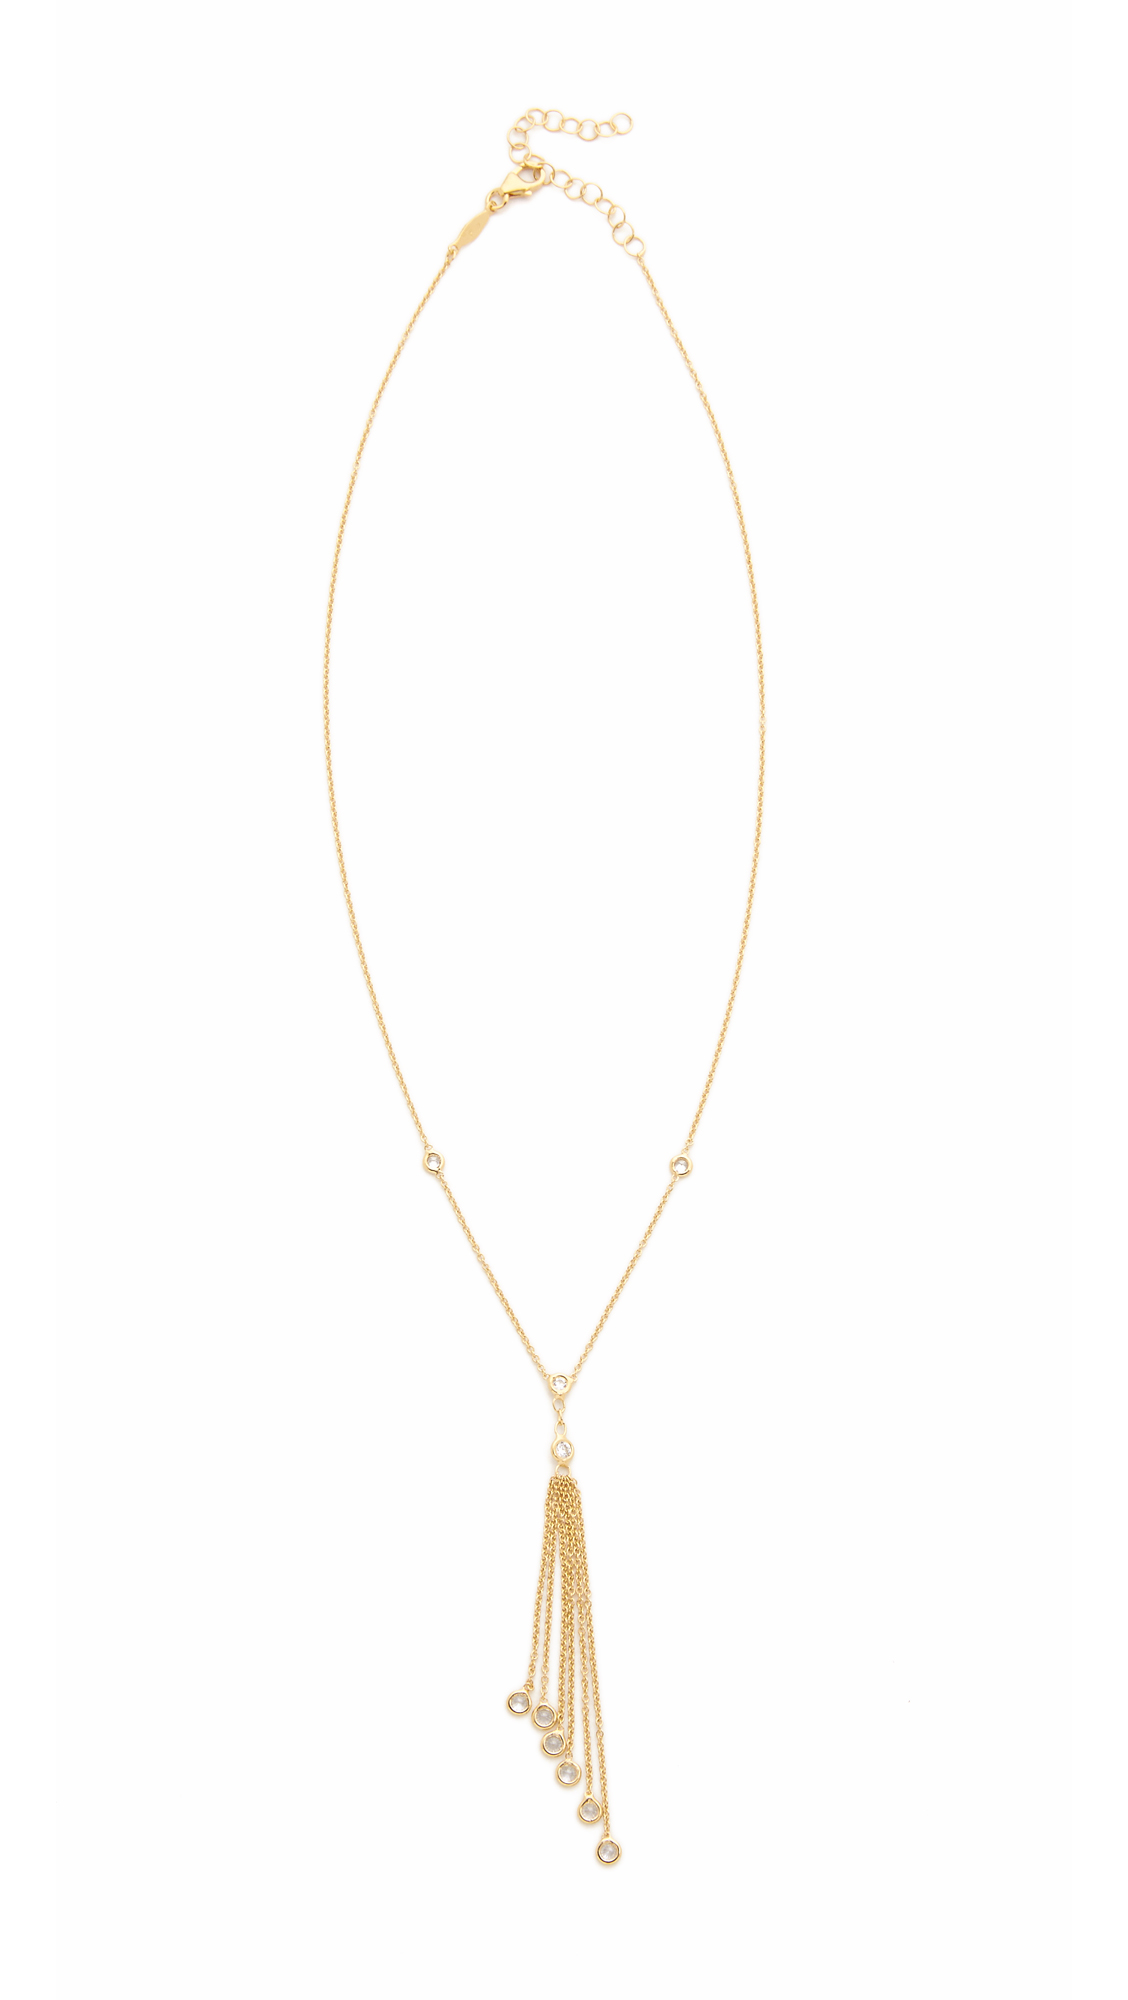 Jacquie Aiche Tassel Necklace in Metallic Gold Q6vh1